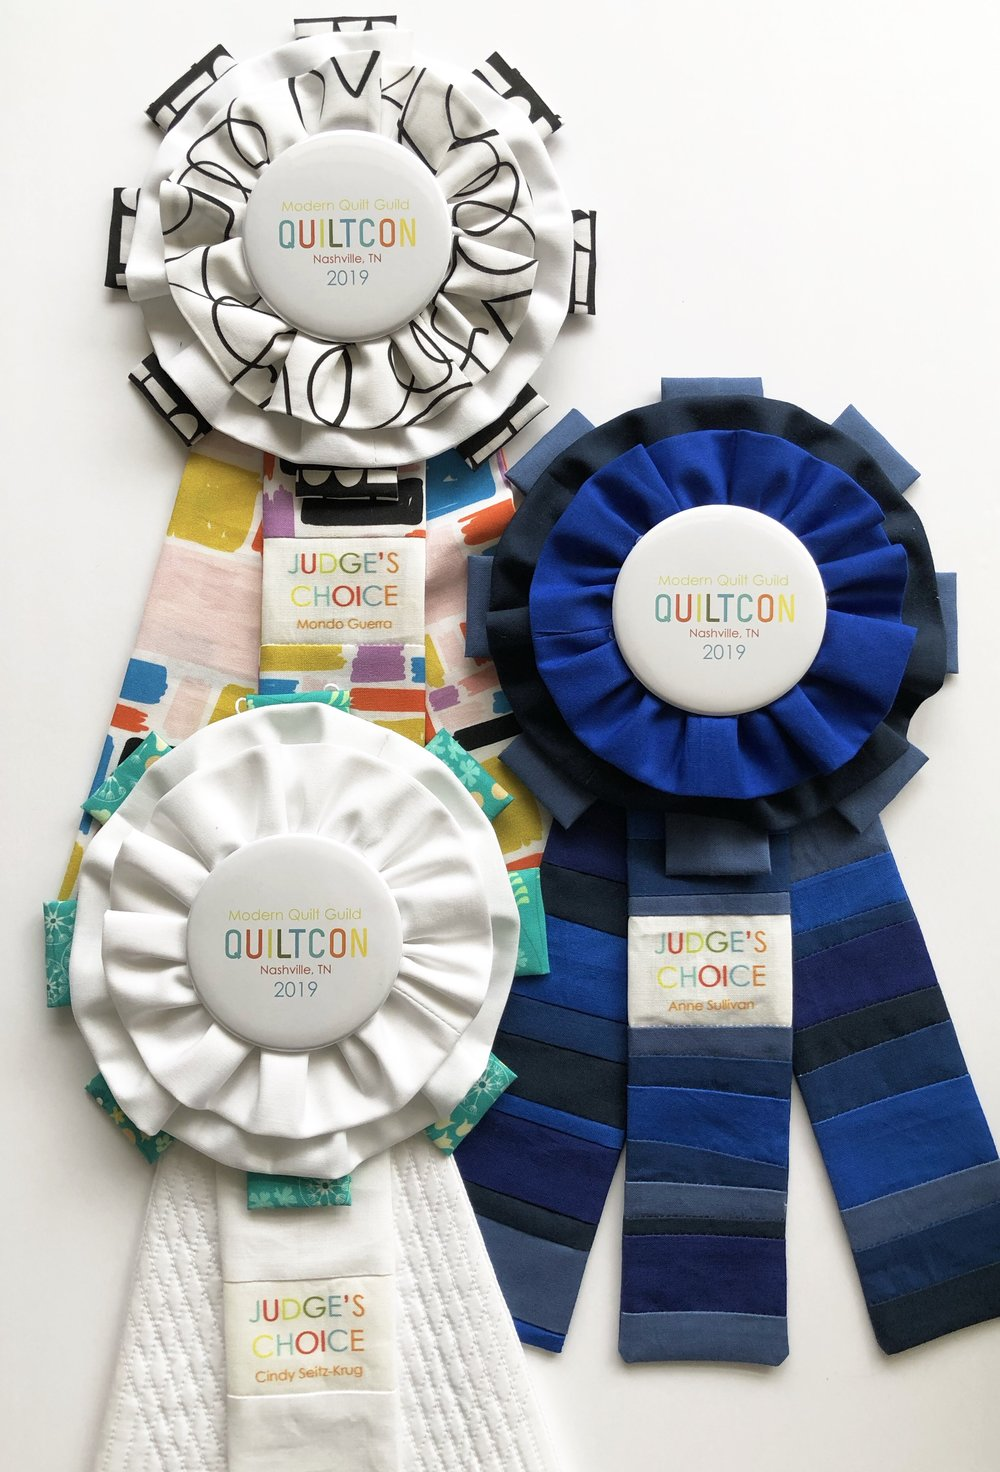 For Judge's Choice I try to get a little more personal and creative and match up the ribbons a bit with the judge. I do not personally know any of the judges this year (I met Anne at QuiltCon) so I had to go by what I heard or saw online. Always a challenge - but a fun one!